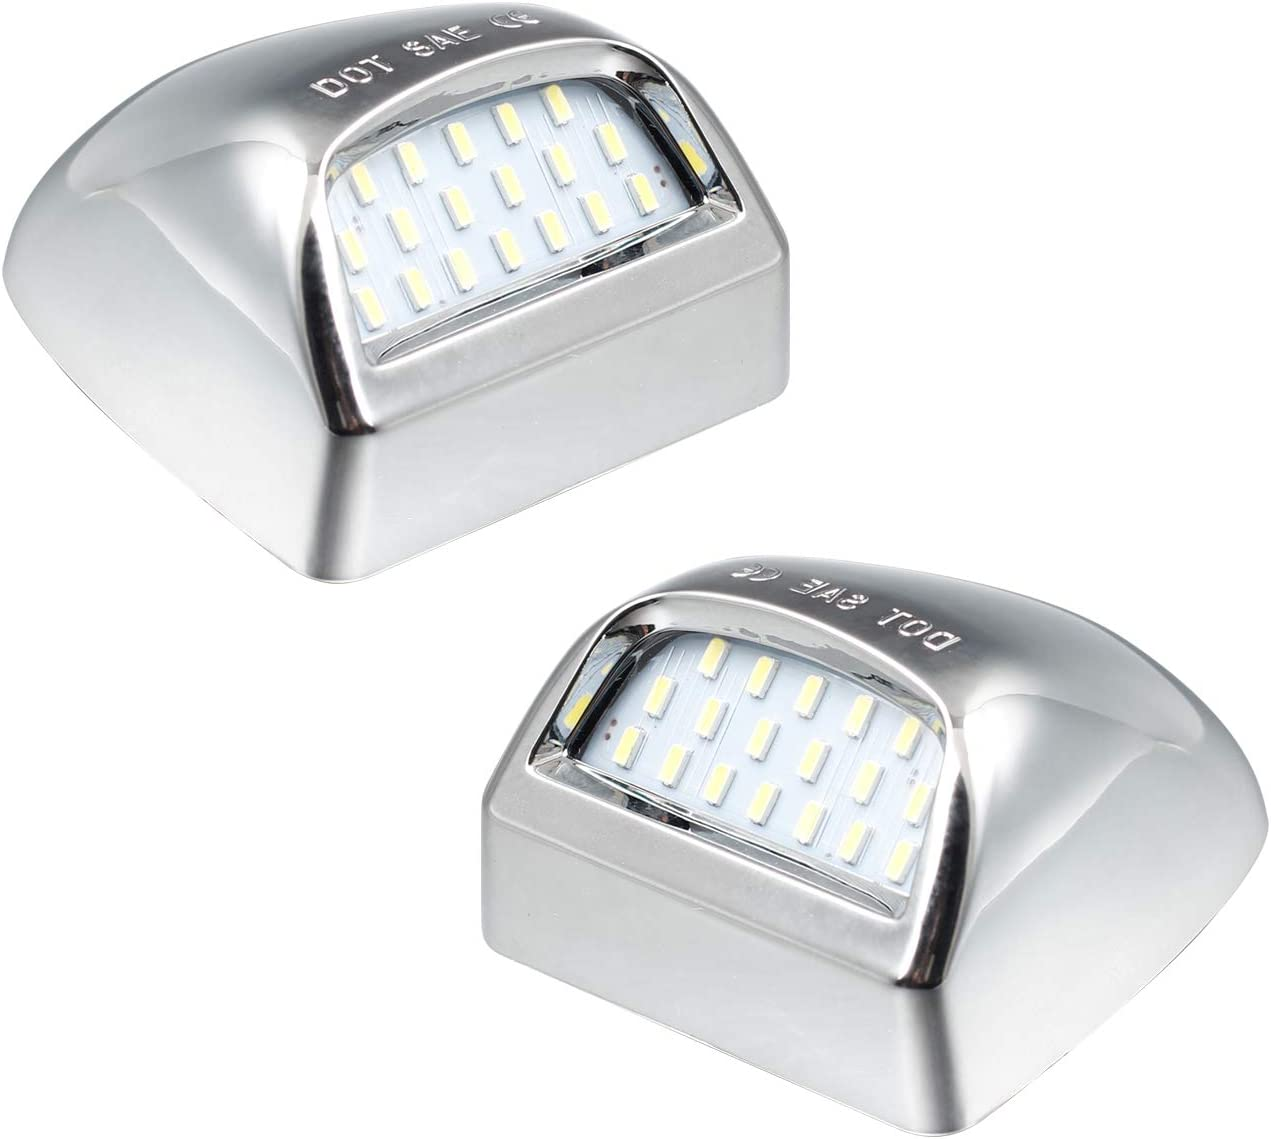 6000K White RUXIFEY LED License Plate Light Lamp Compatible with Chevy Silverado Suburban Tahoe GMC Sierra 1500 2500 3500 HD Escalade EXT Pack of 2